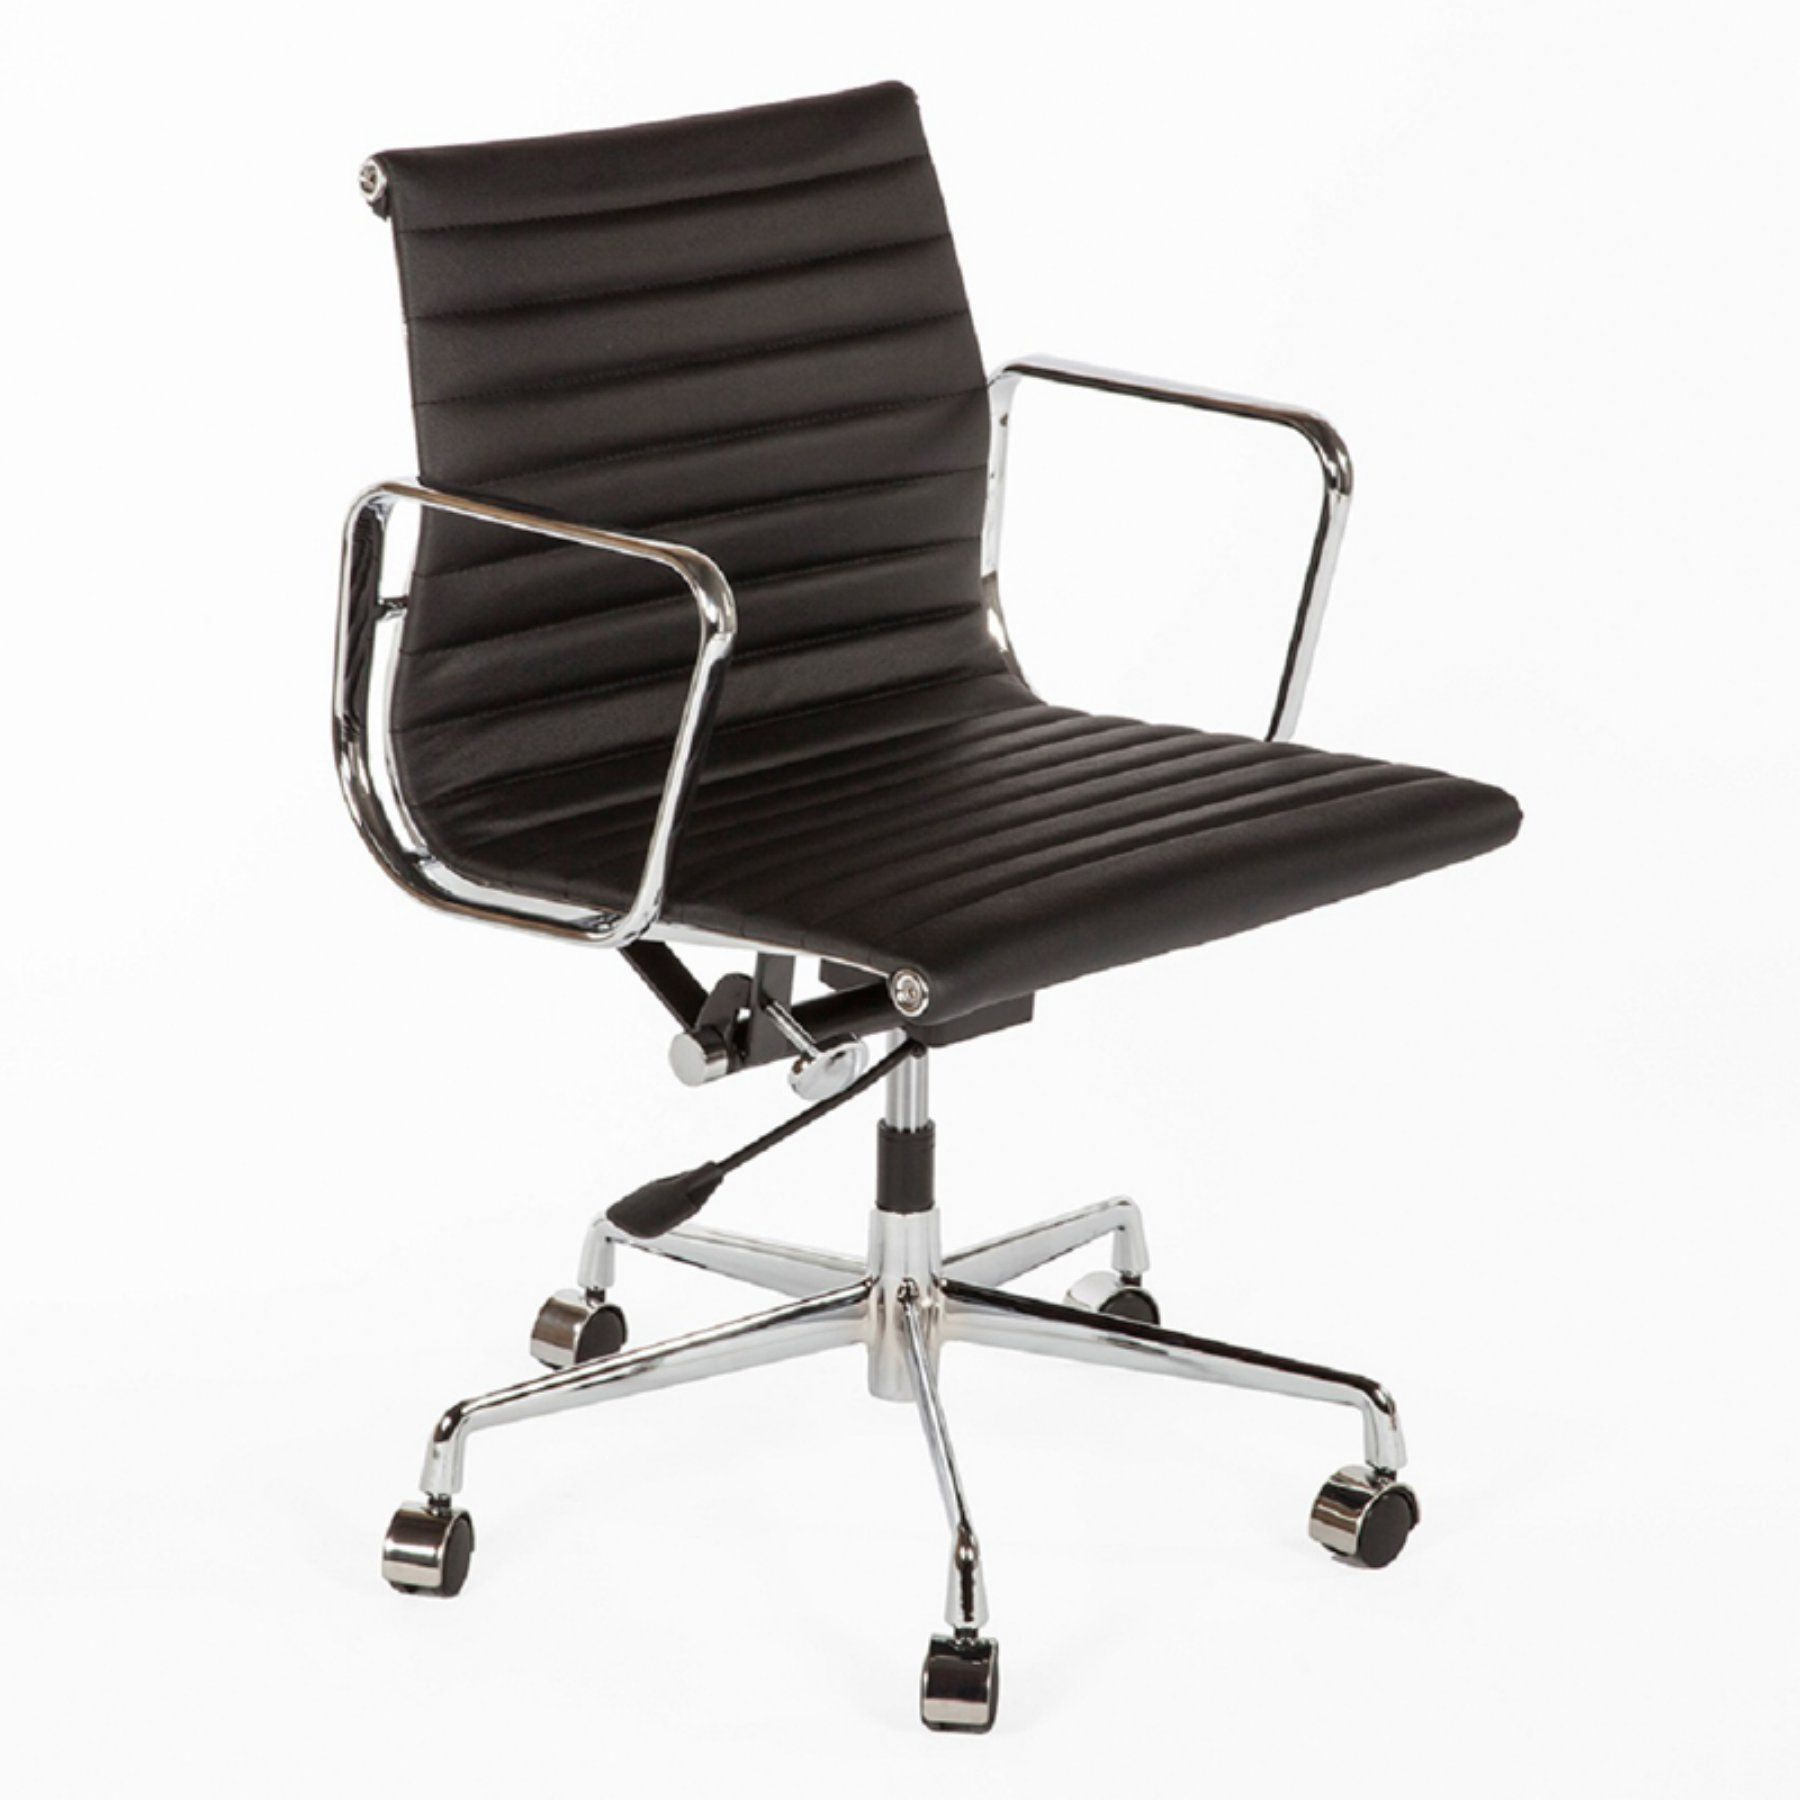 Stilnovo Genuine Leather Executive Office Chair Products Chair